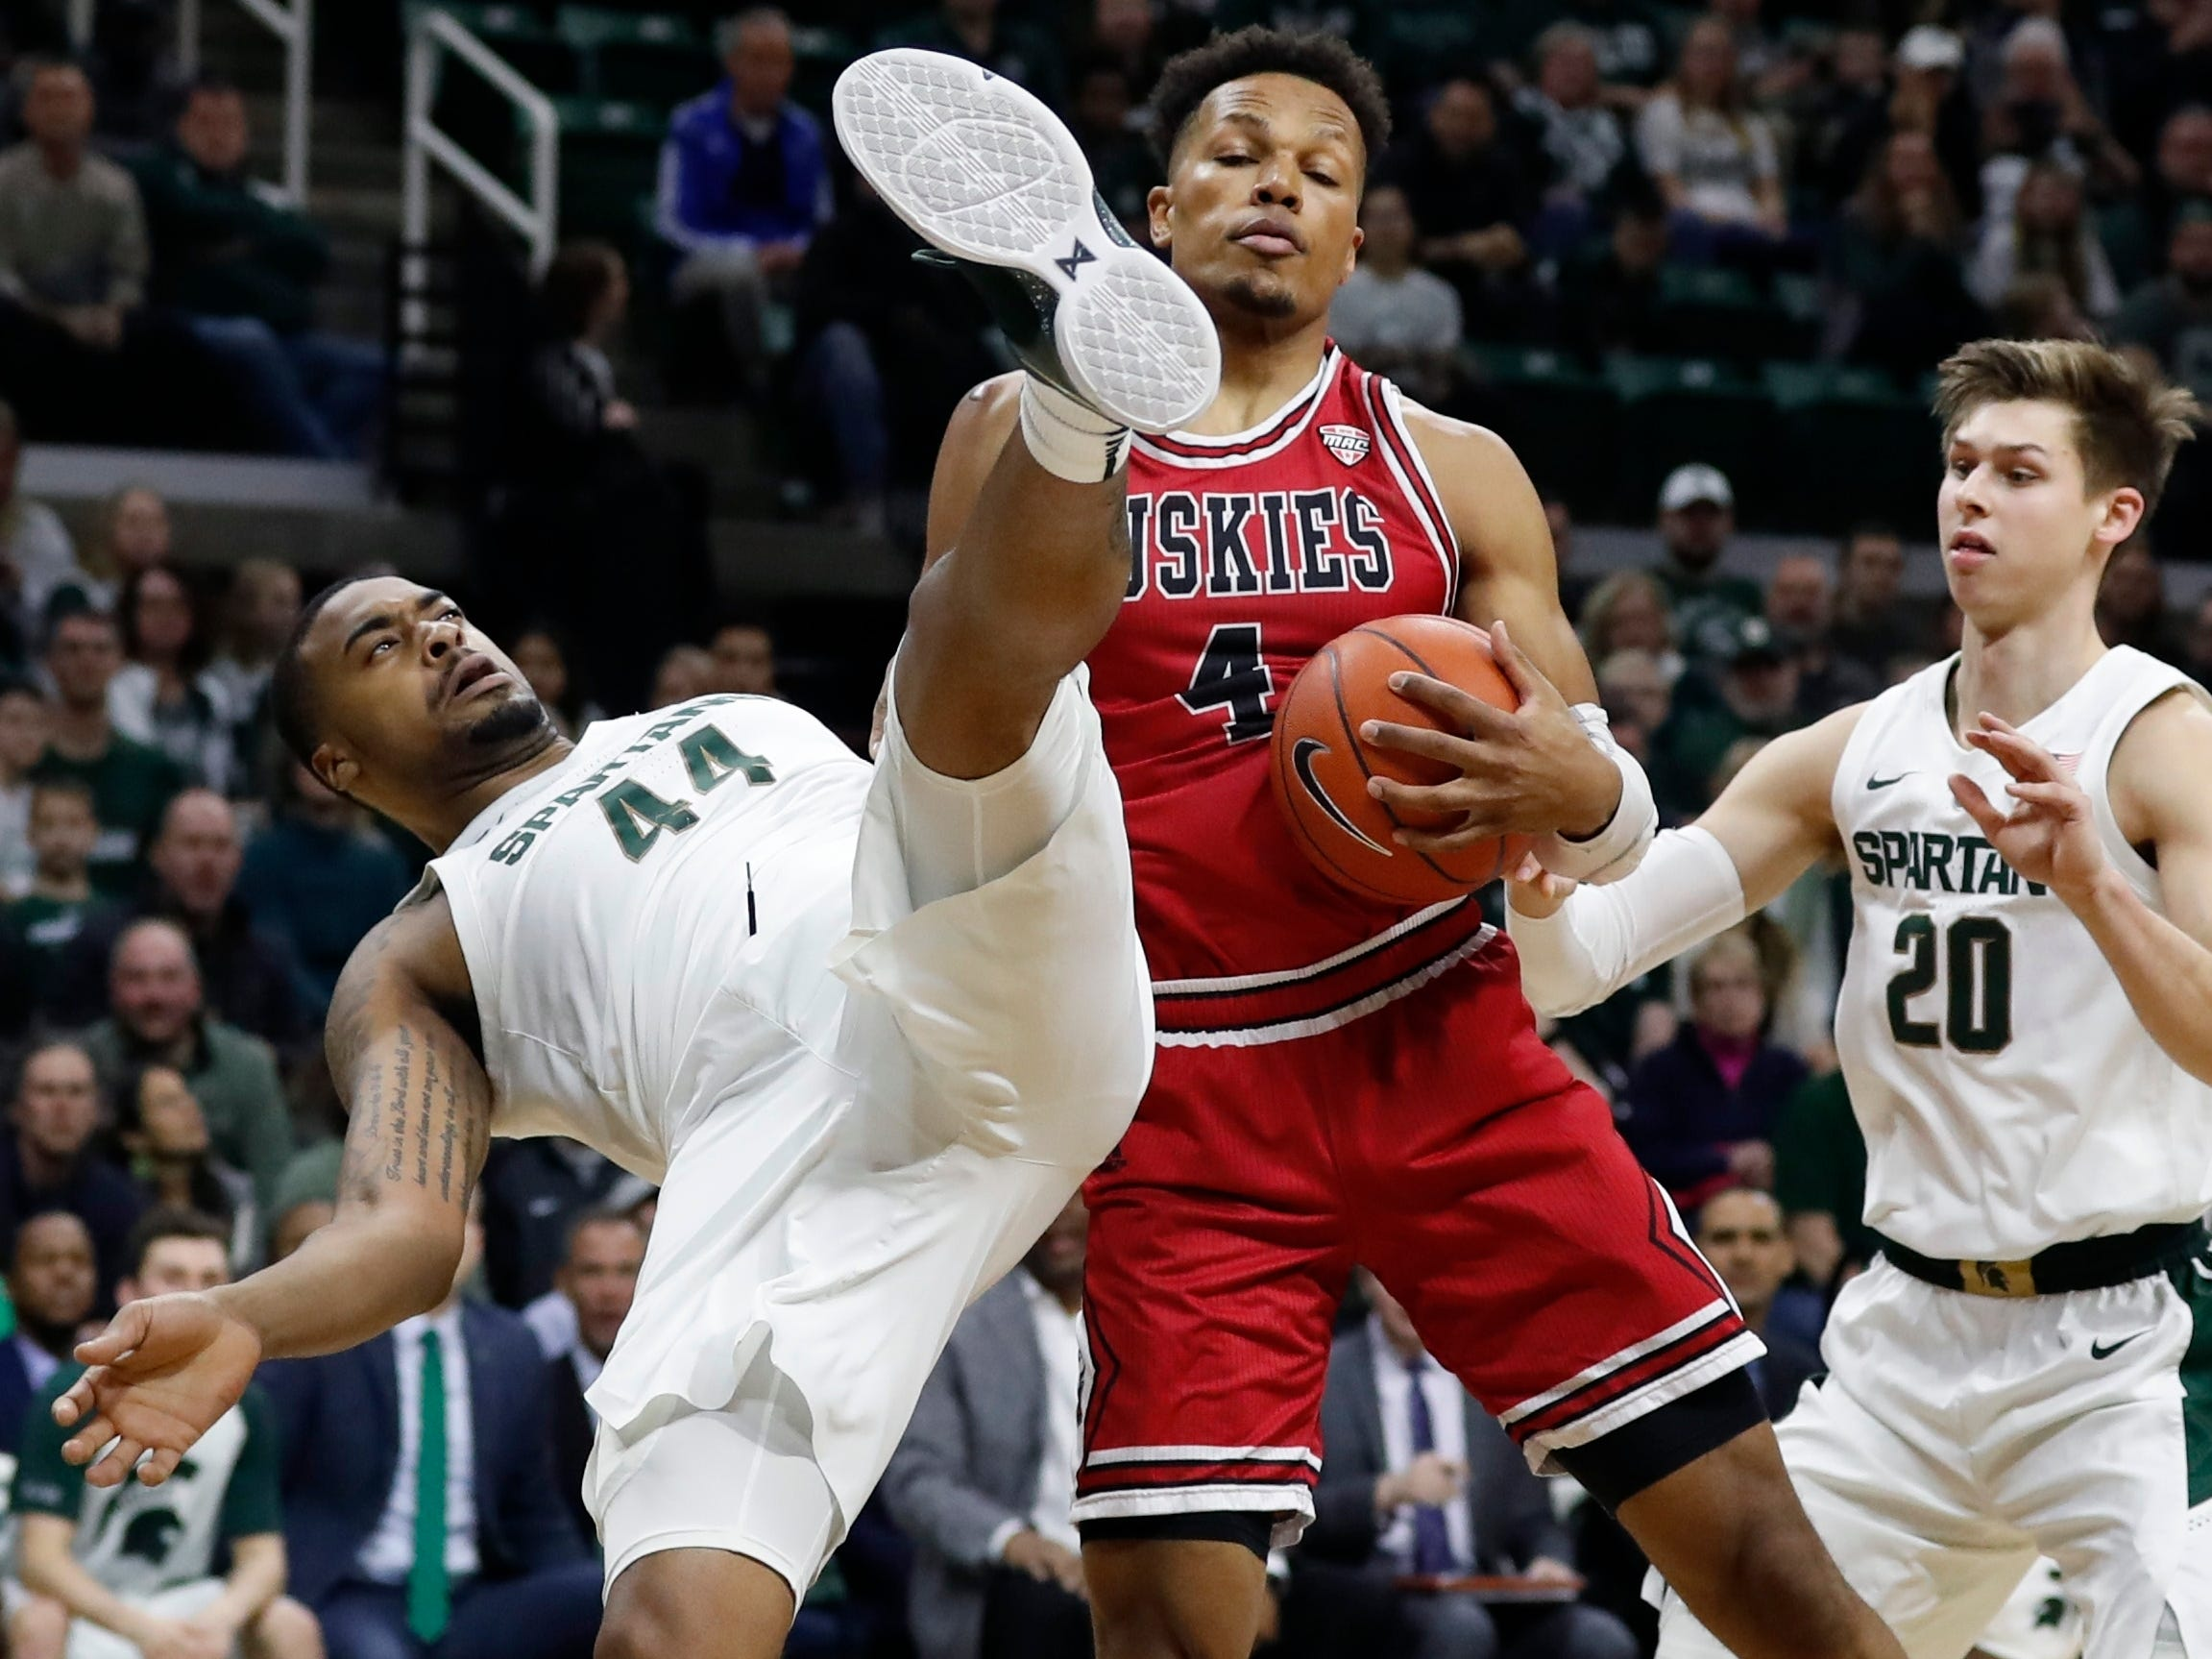 Michigan State forward Nick Ward falls next to Northern Illinois forward Lacey James as they fight for the rebound during the first half on Saturday, Dec. 29, 2018, in East Lansing.